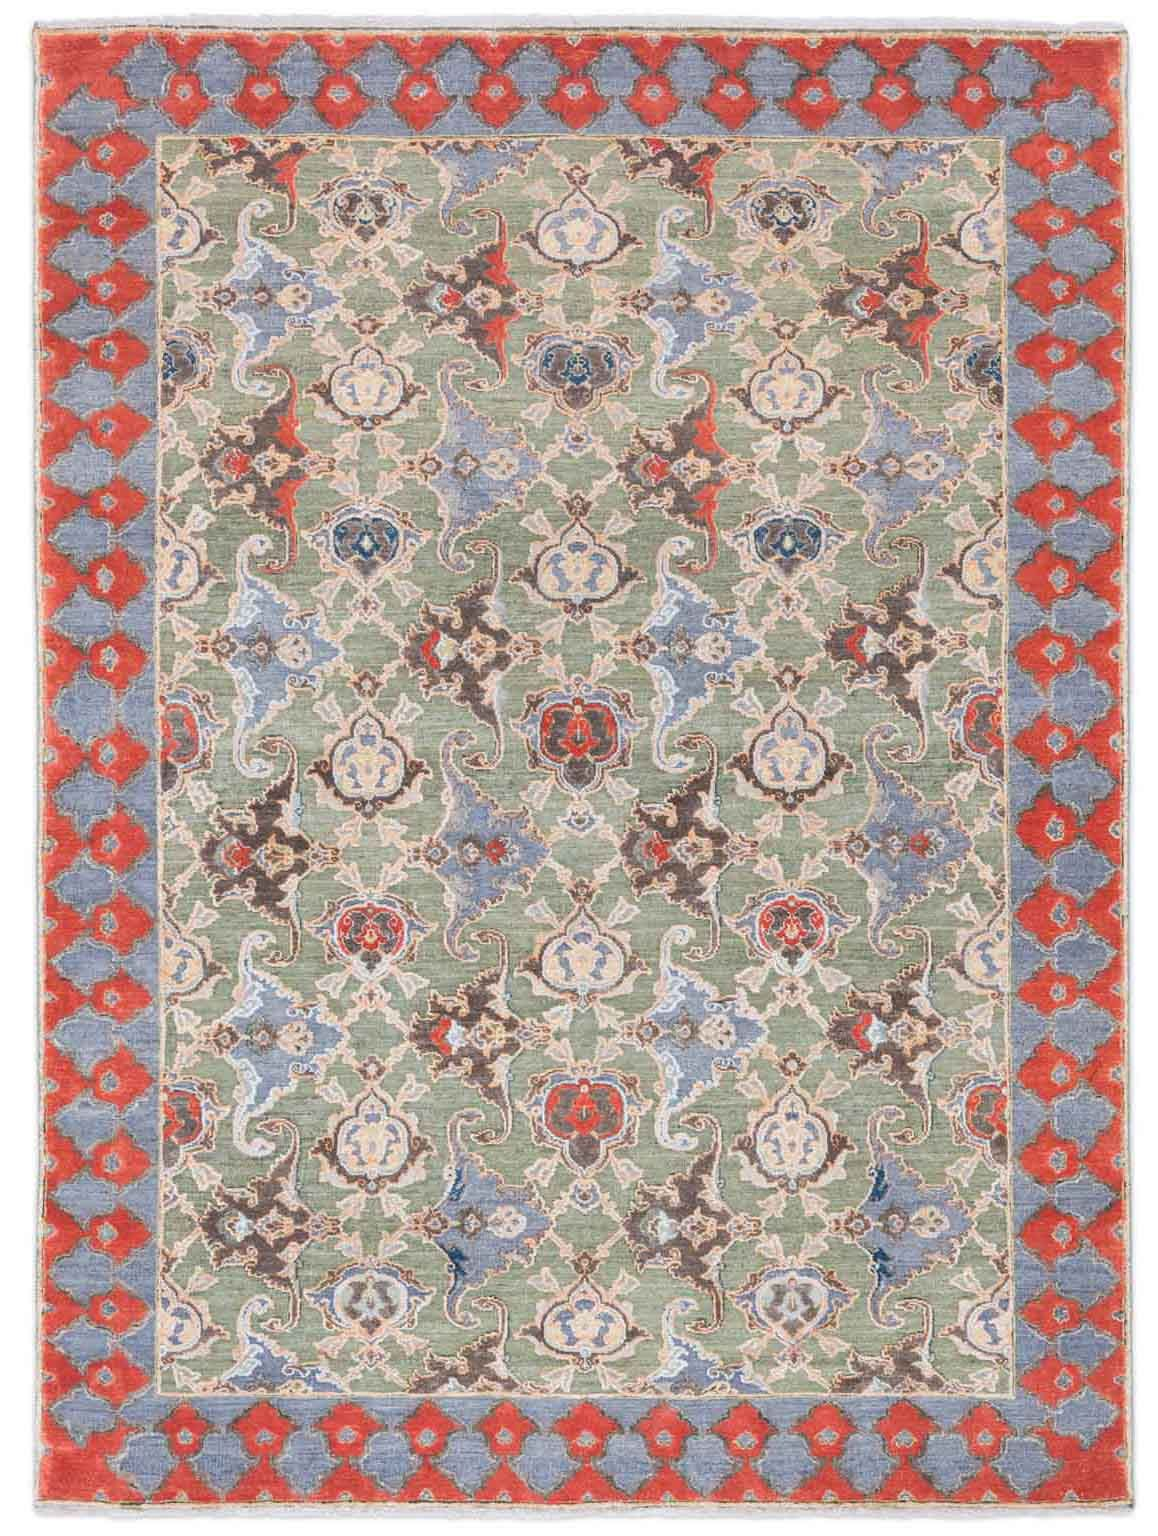 Polonaise No 05 Rug By Knots Rugs